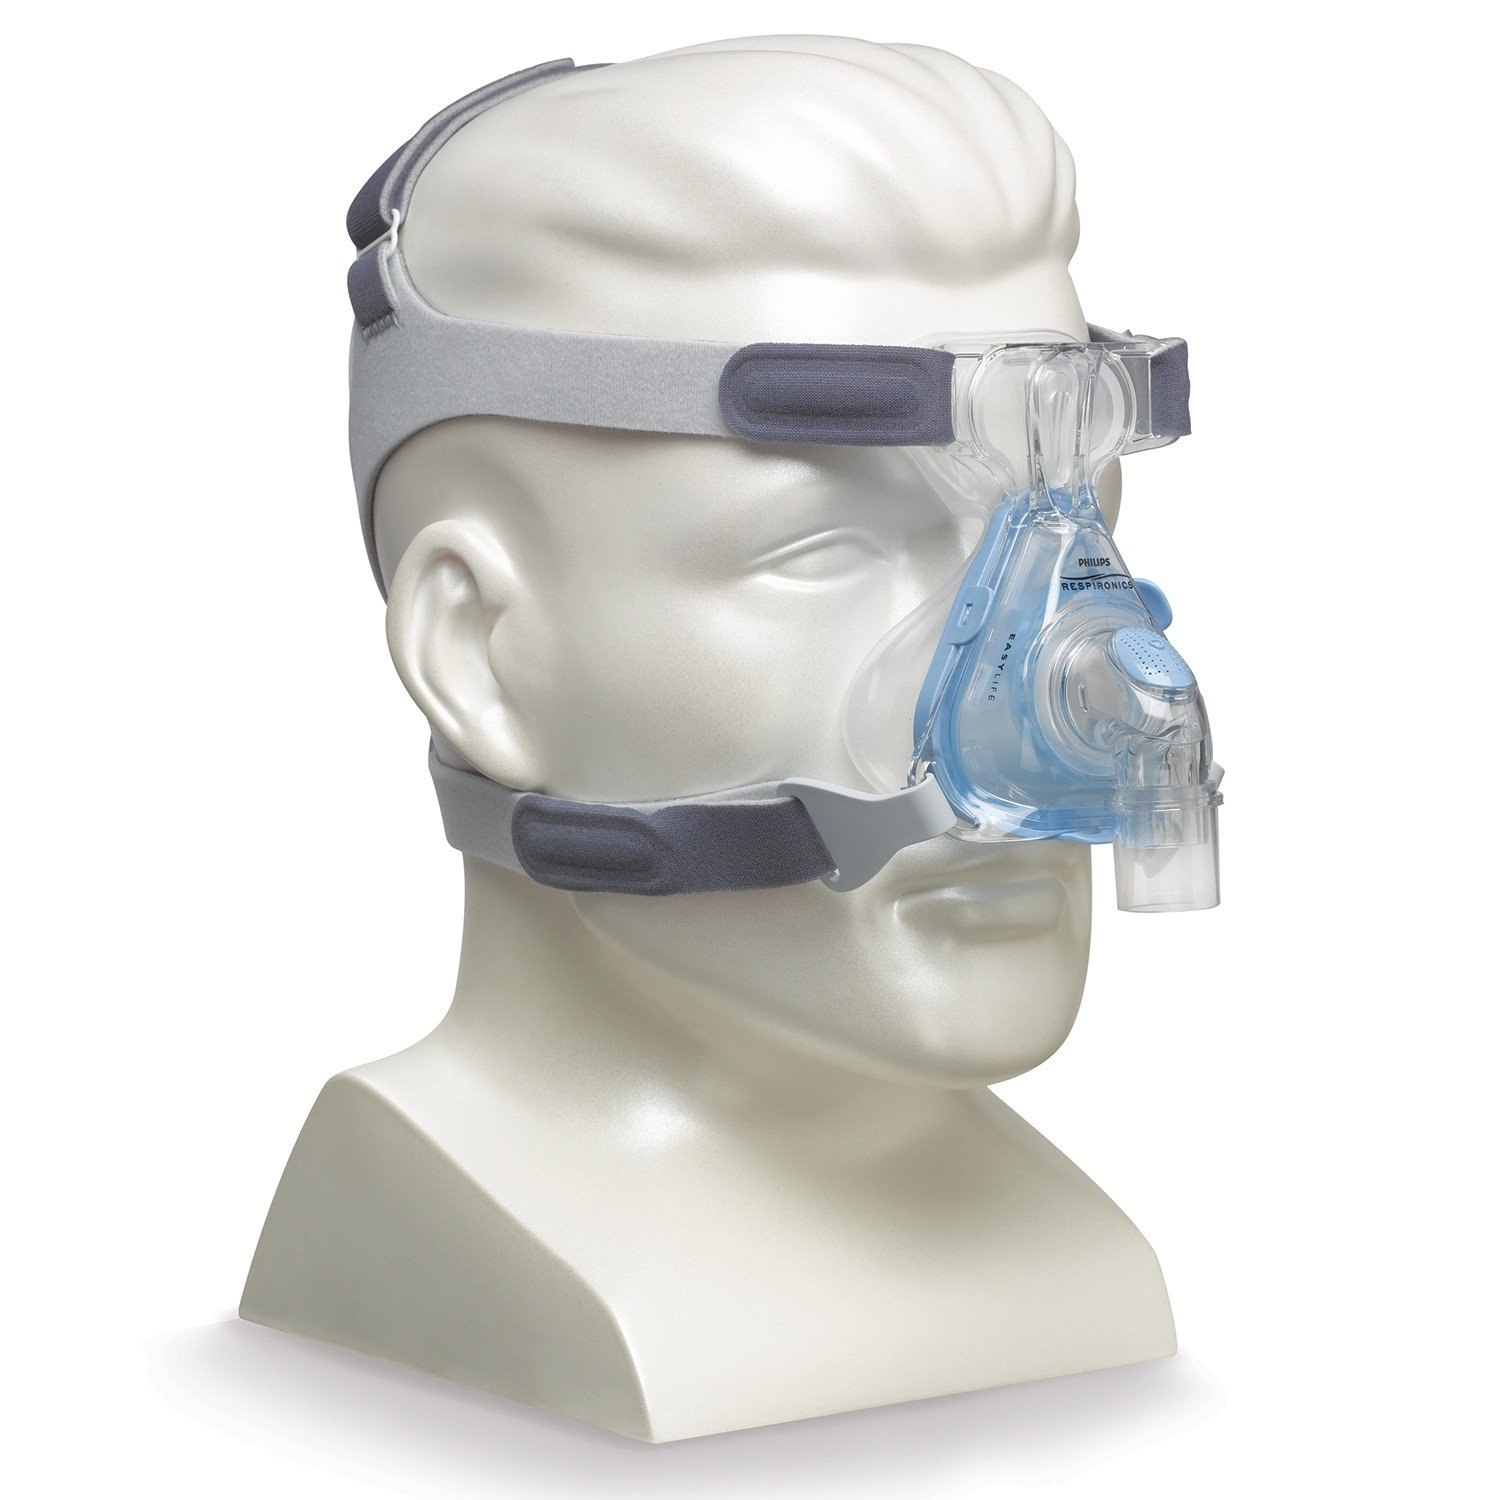 New Respironics EasyLife Nasal CPAP Mask and Headgear, Size L